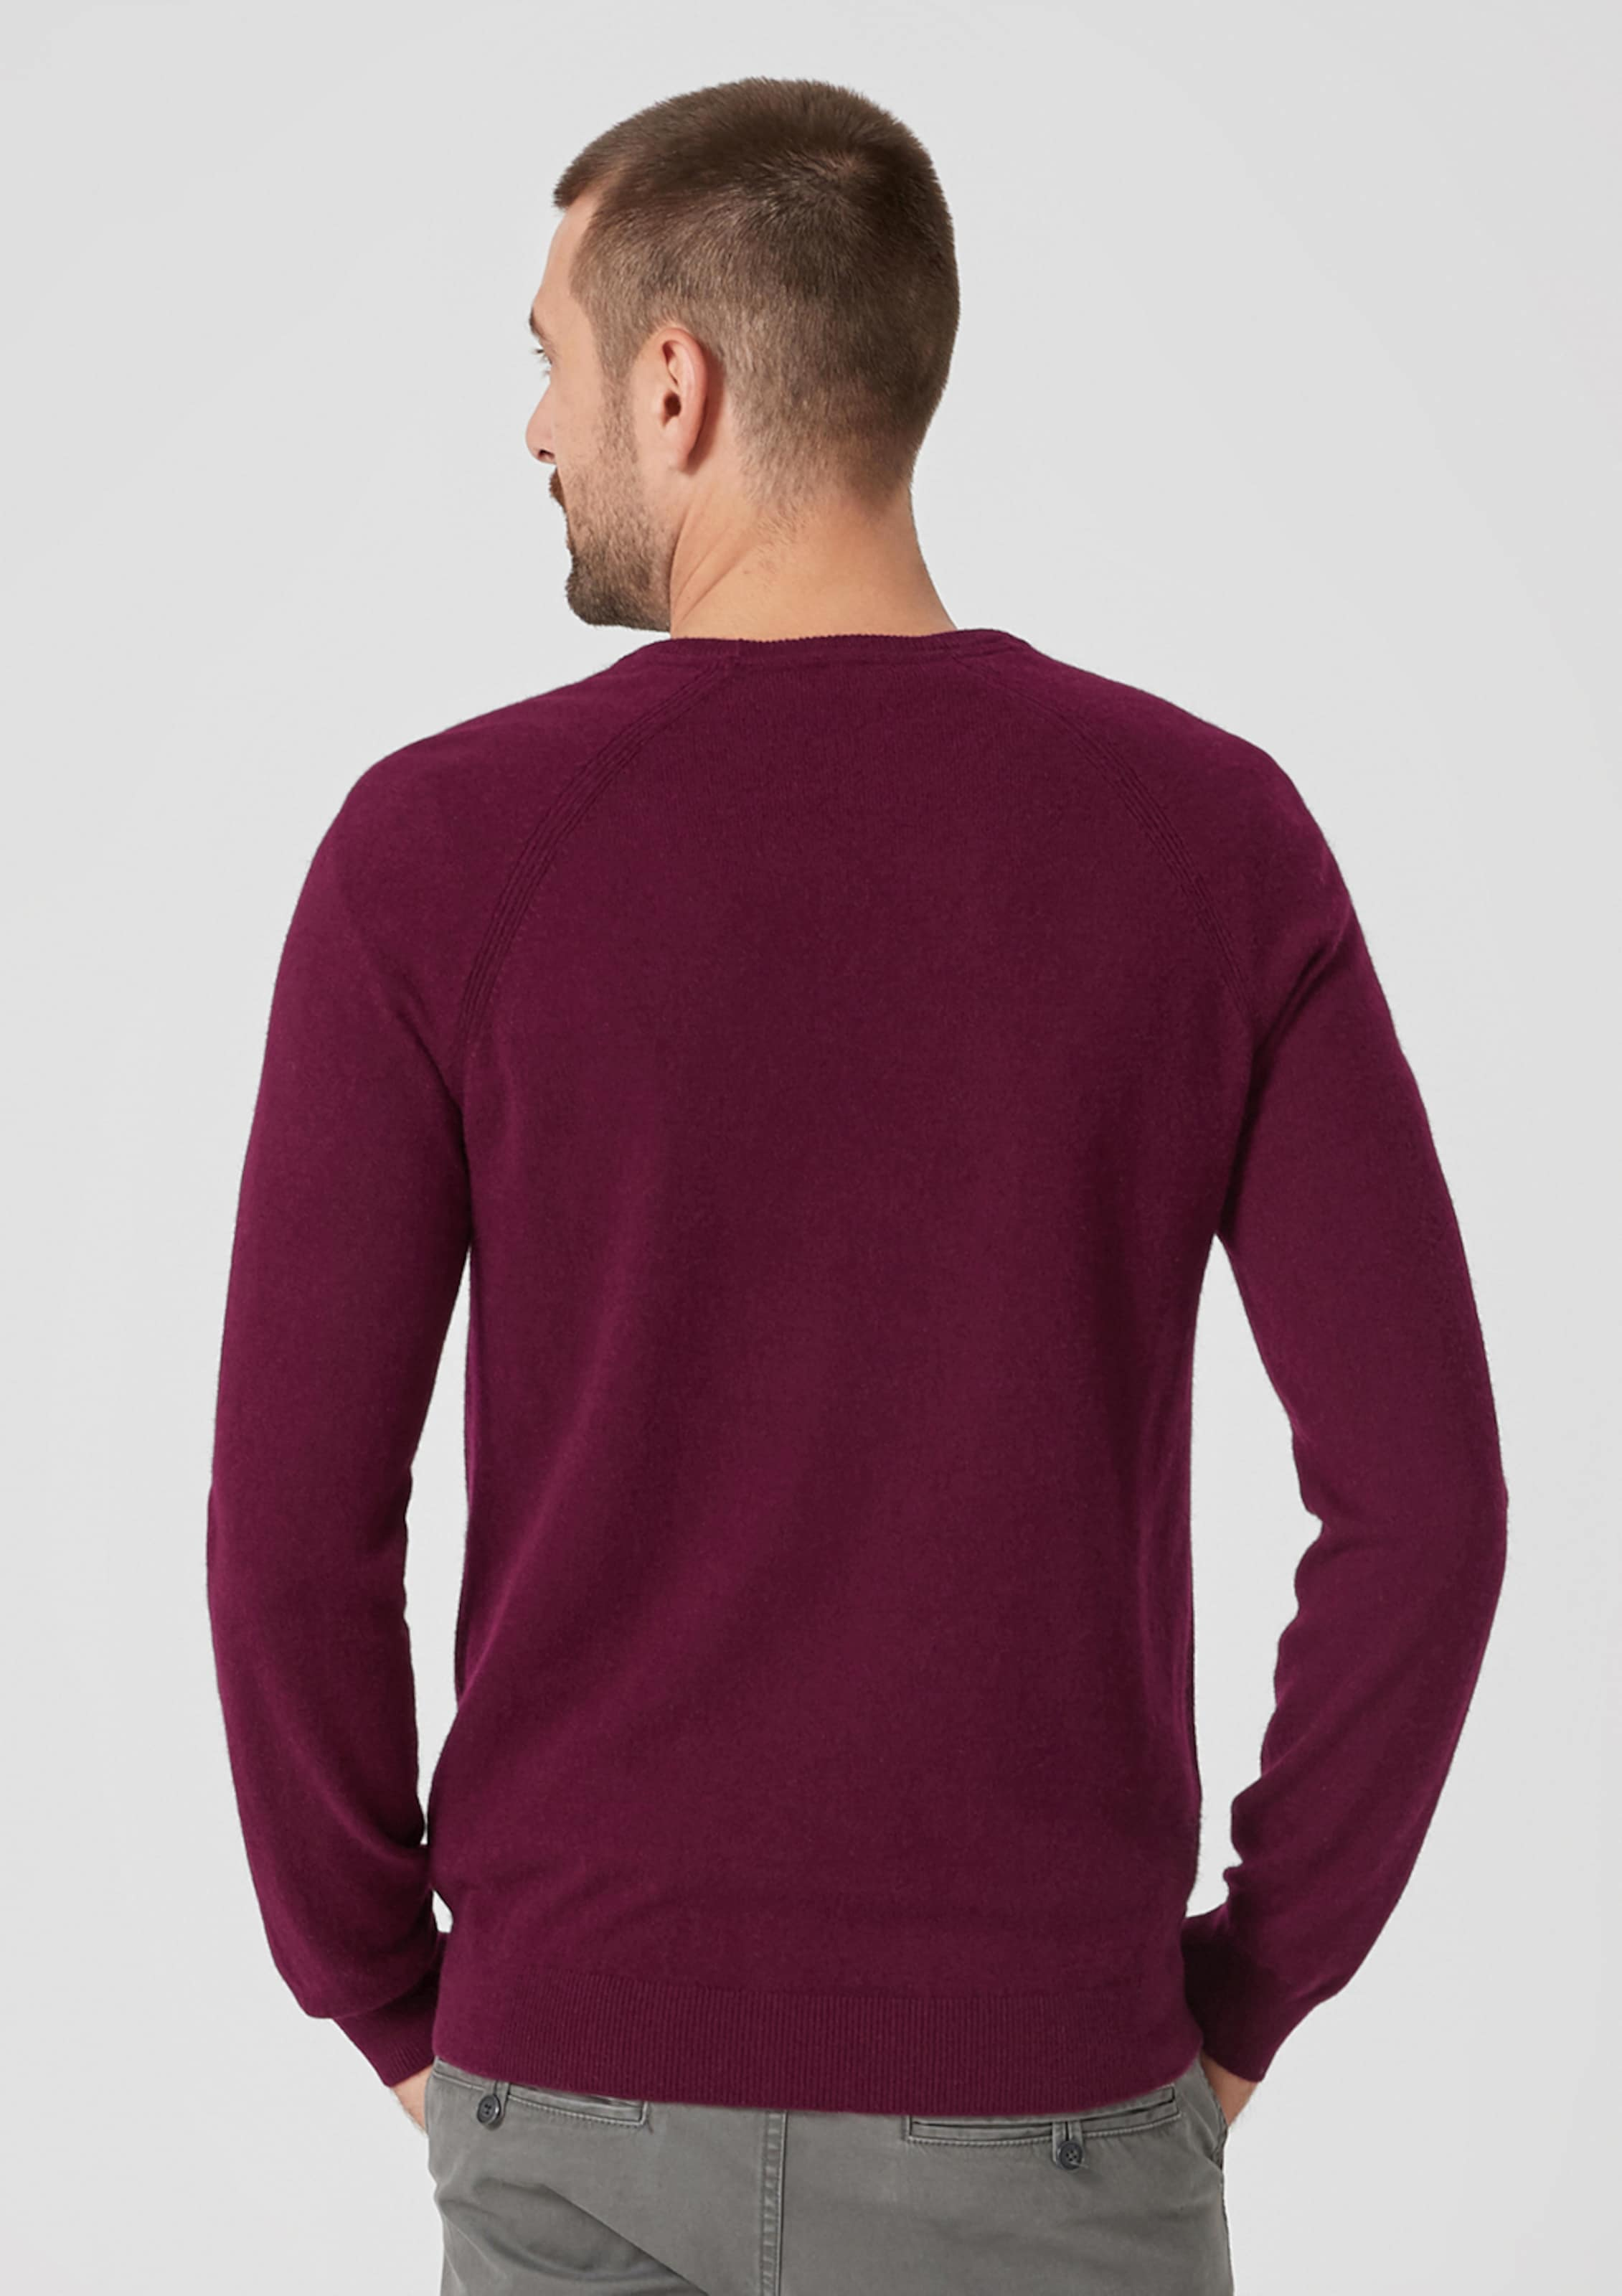 Label Red Pullover S oliver Rotviolett In OPuXZwkTi